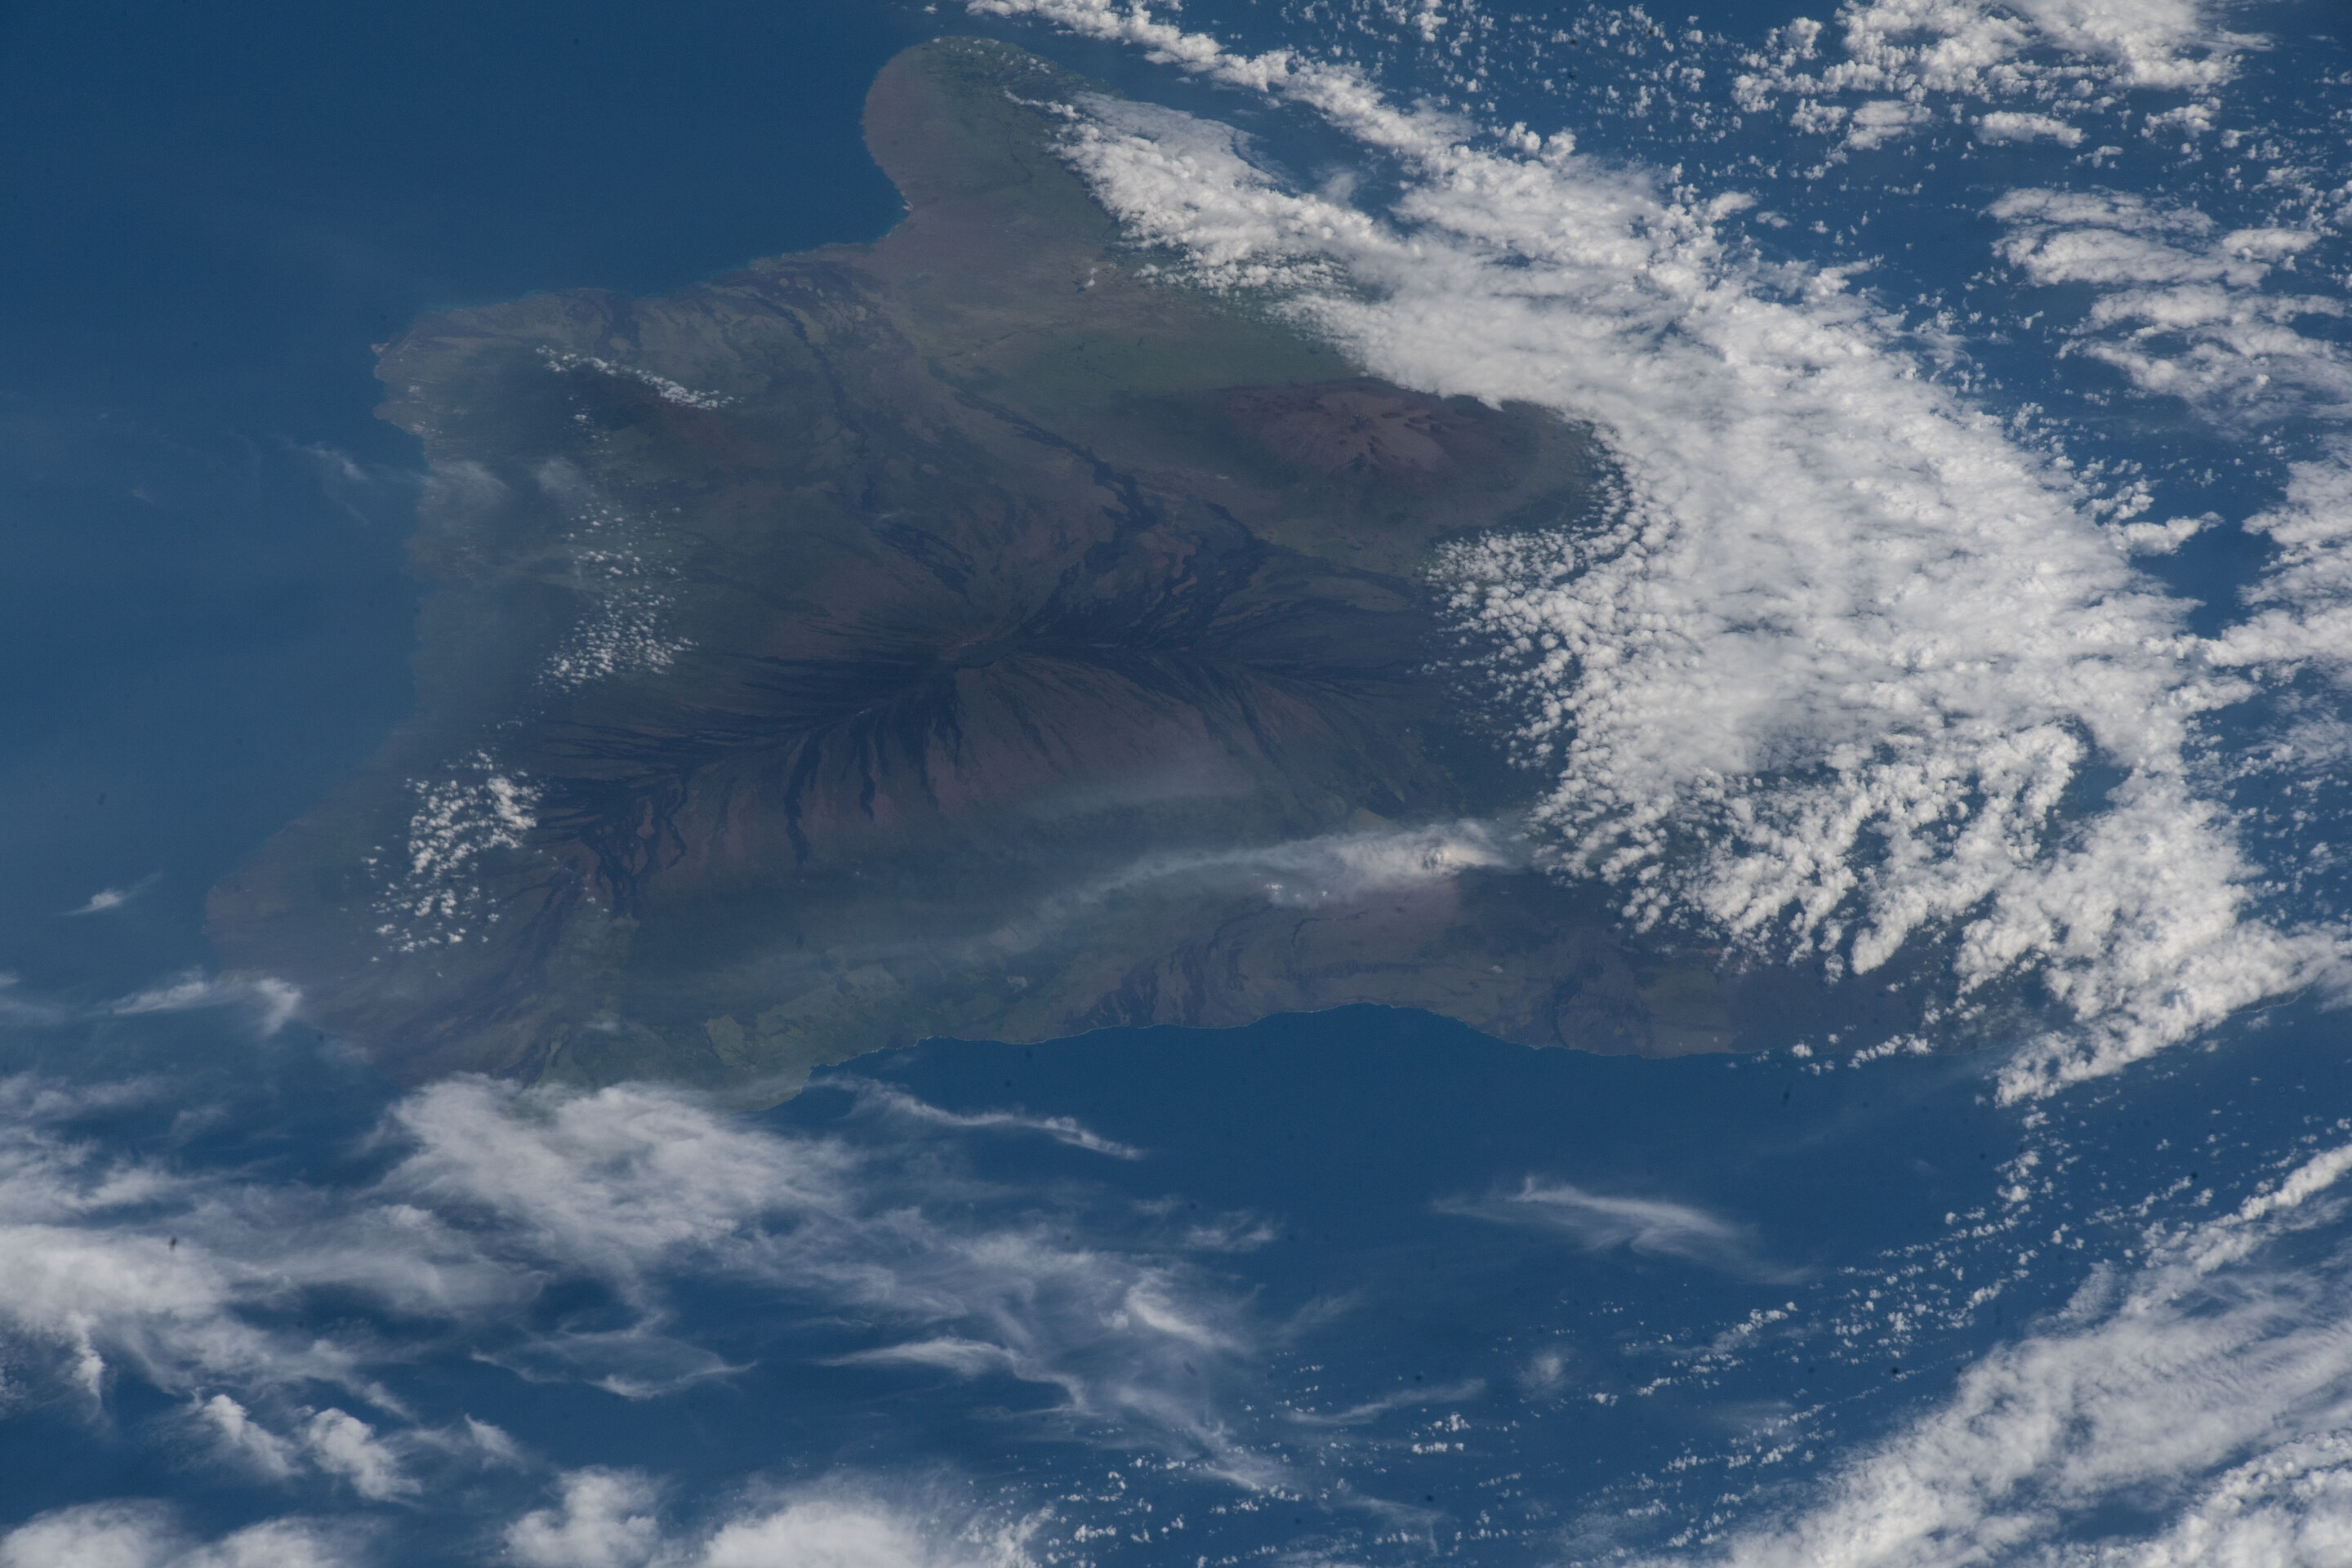 New NASA radar looks to monitor volcanoes and earthquakes from space